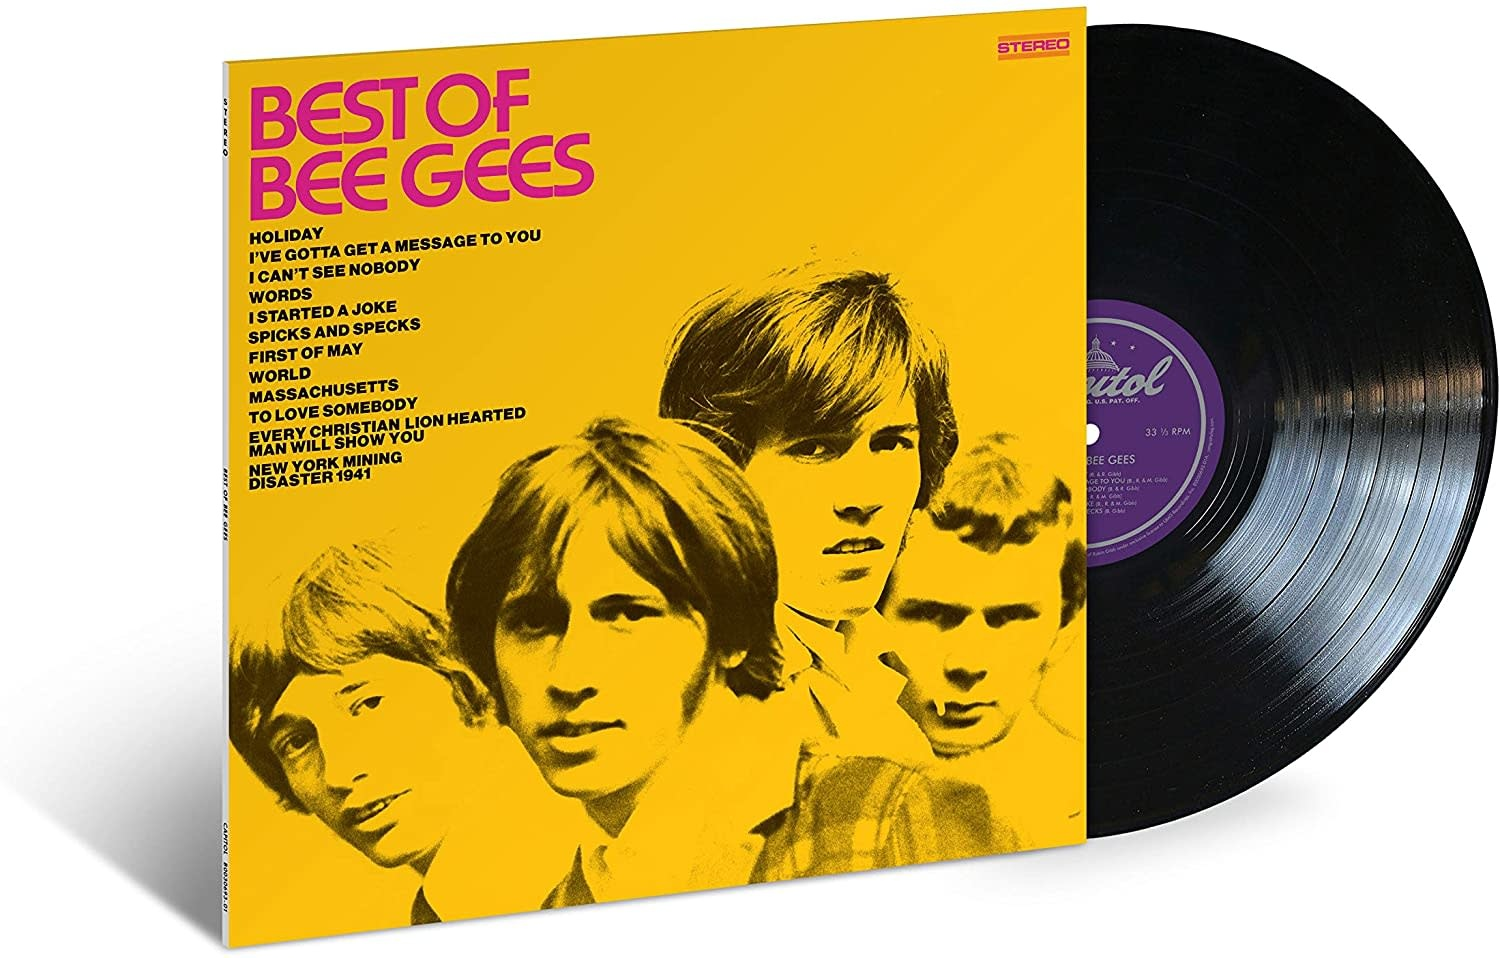 Bee Gees - The Best Of The Bee Gees